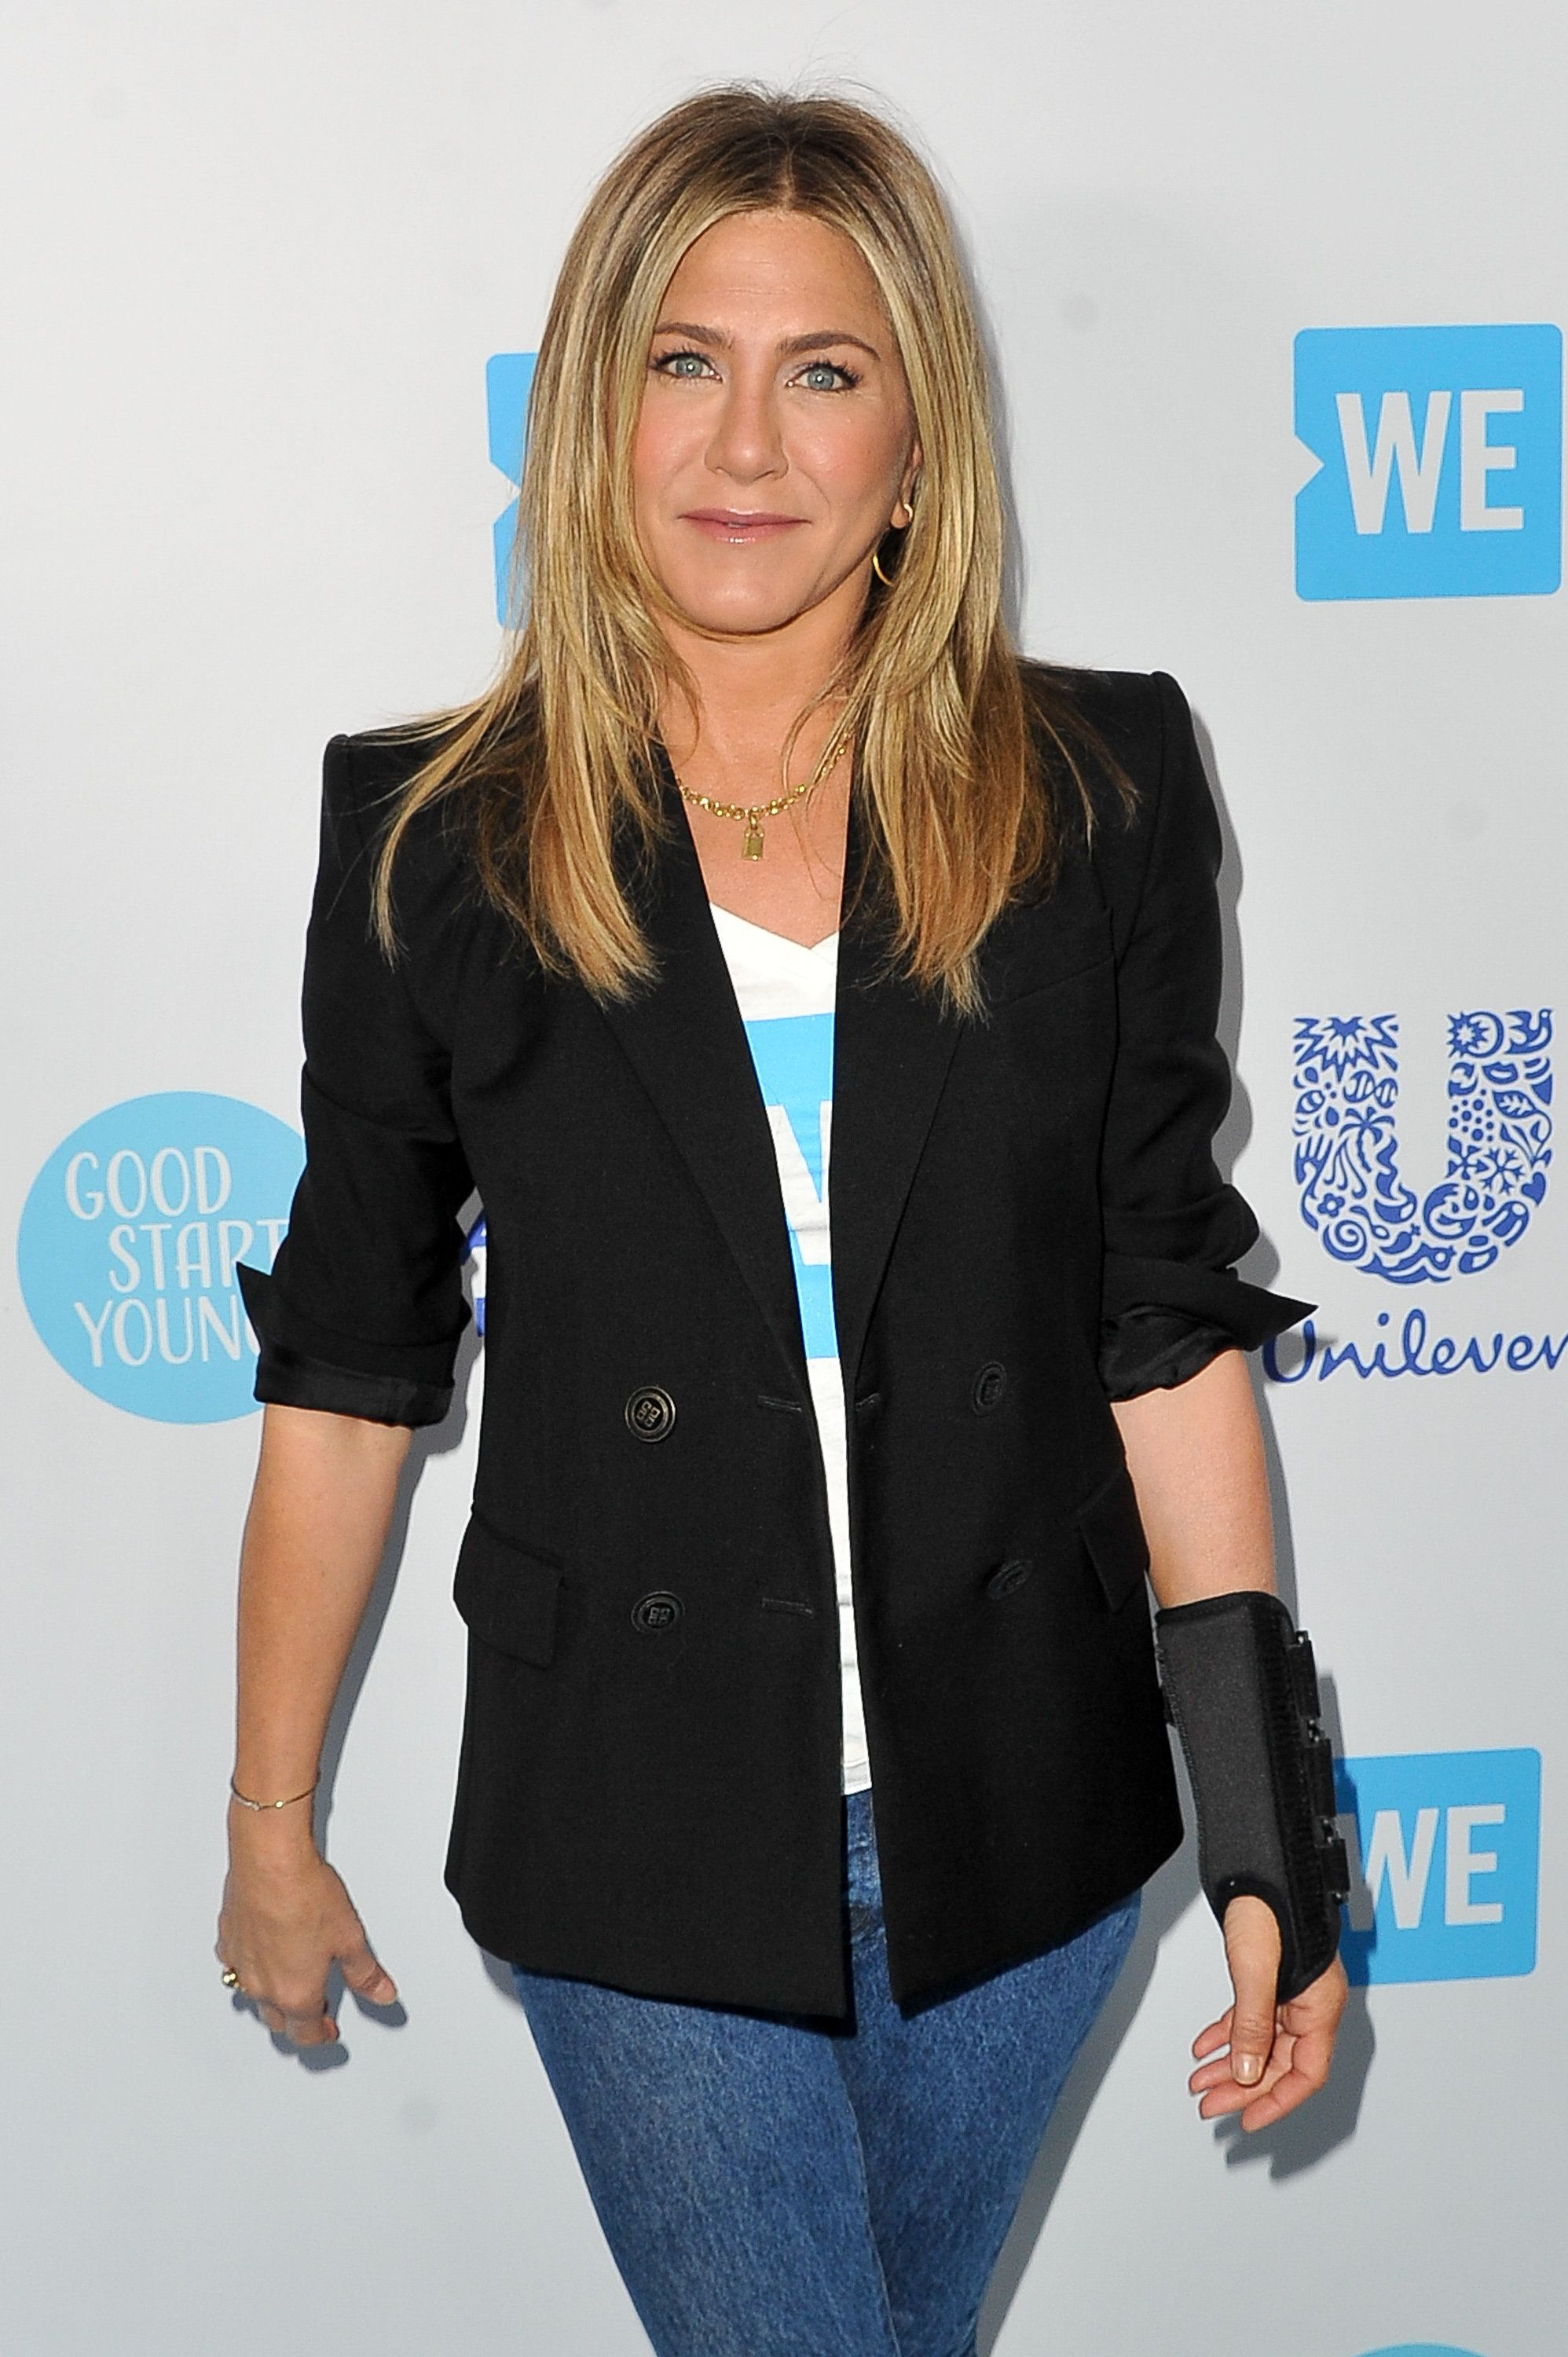 Jennifer aniston is actually a lesbian pic 483